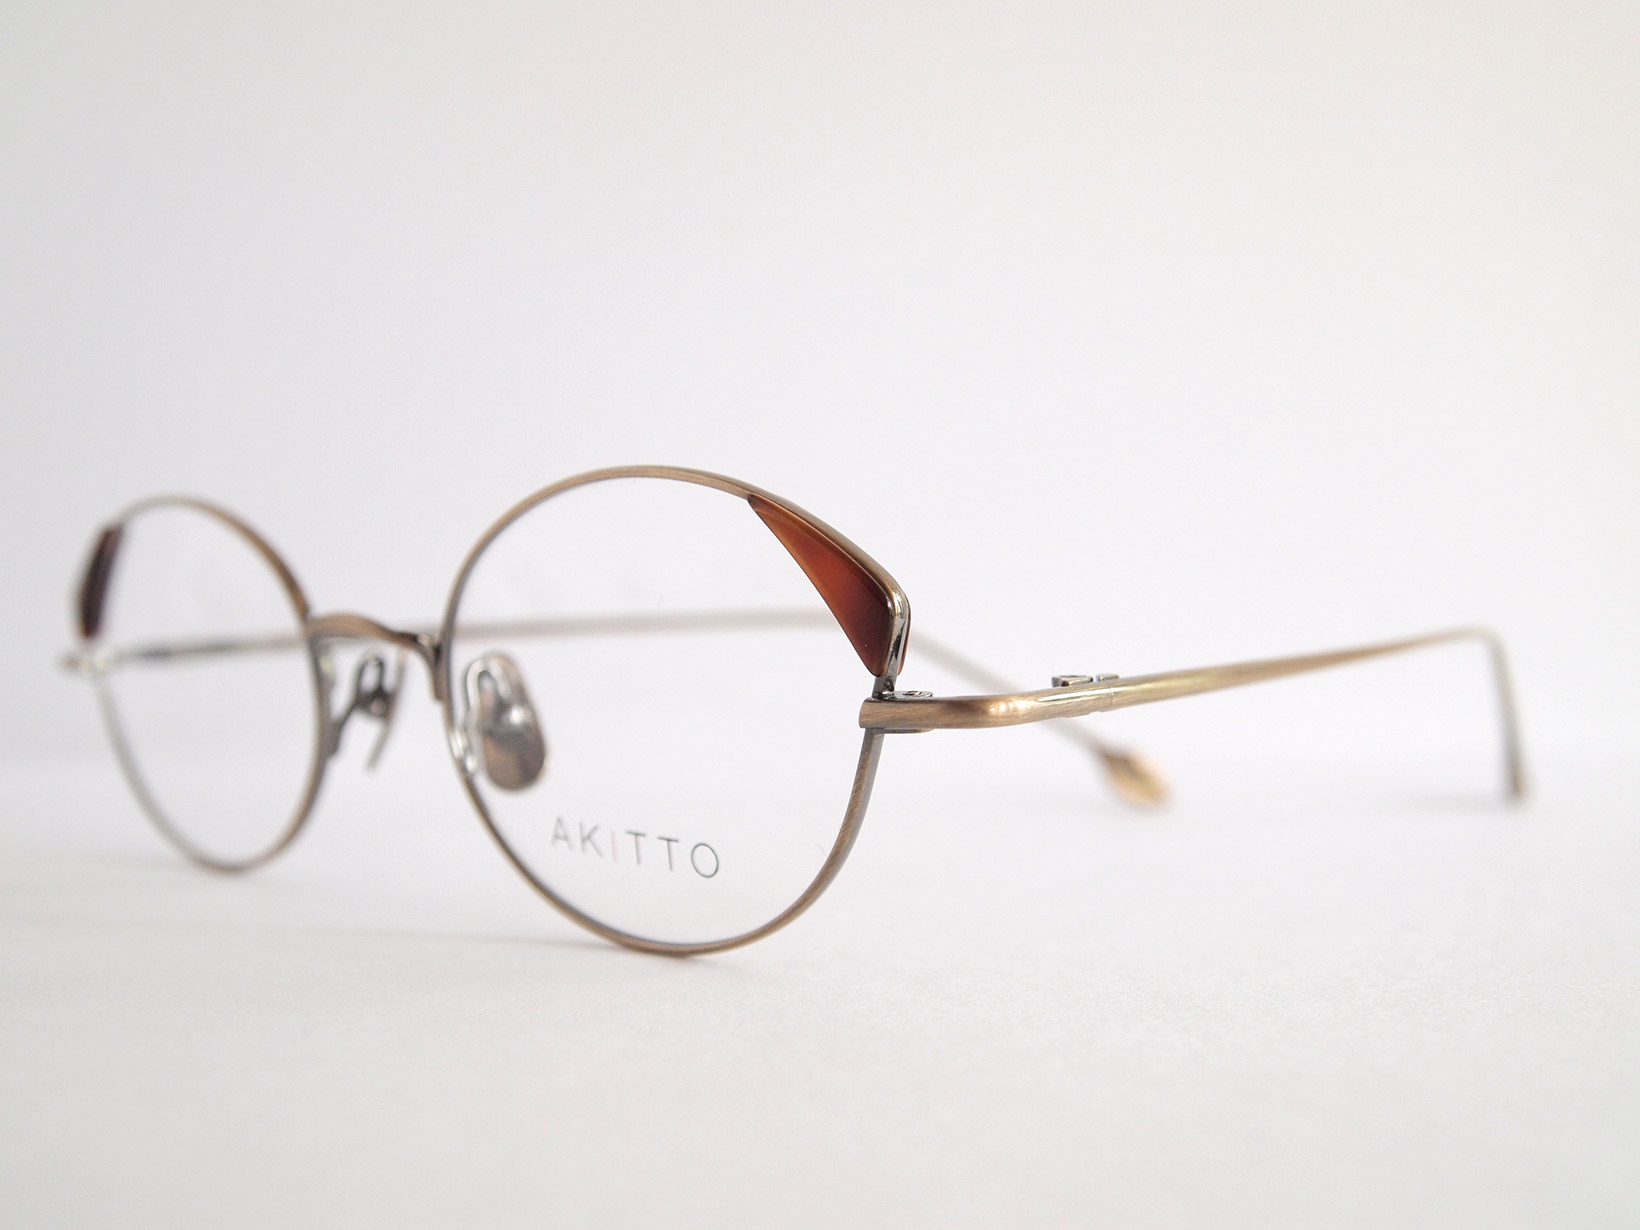 AKITTO 2018-4th pin4 color|DM size:47□19 material:titanium+acetate price:¥42,000-(+tax)